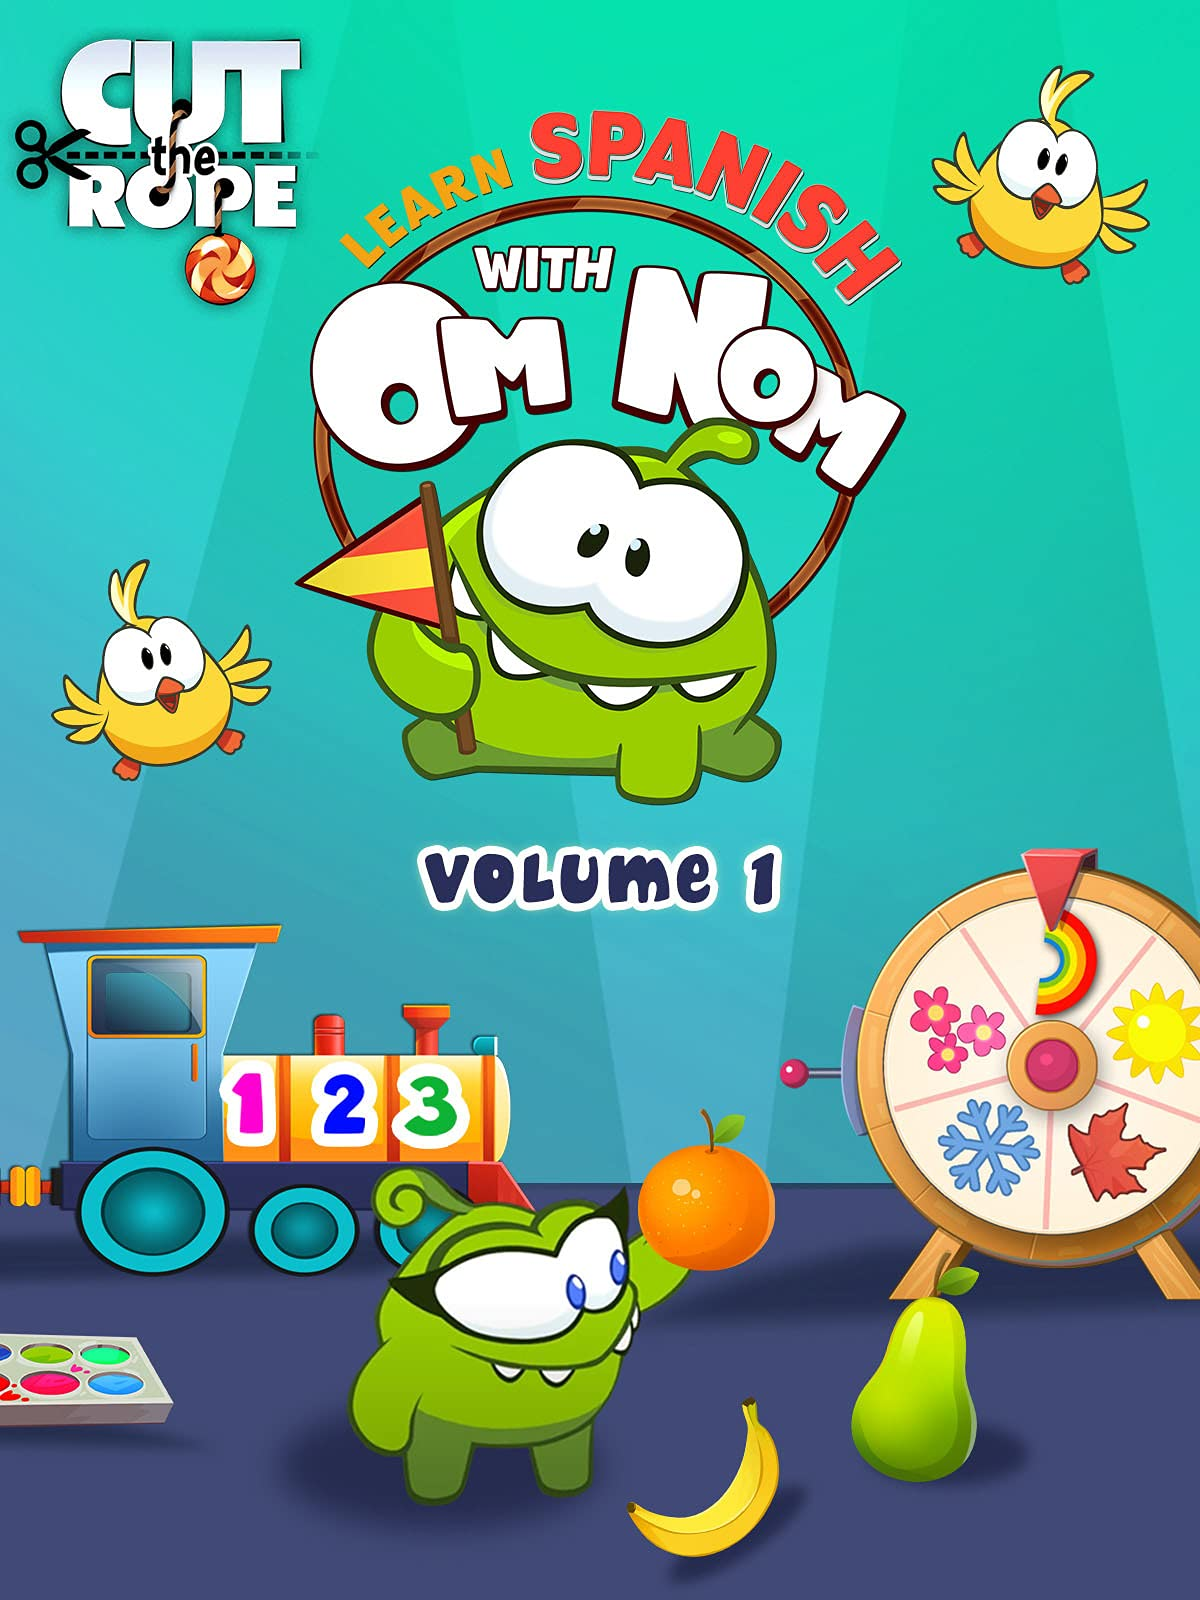 Cut the Rope: Learn Spanish with Om Nom (Volume 1)